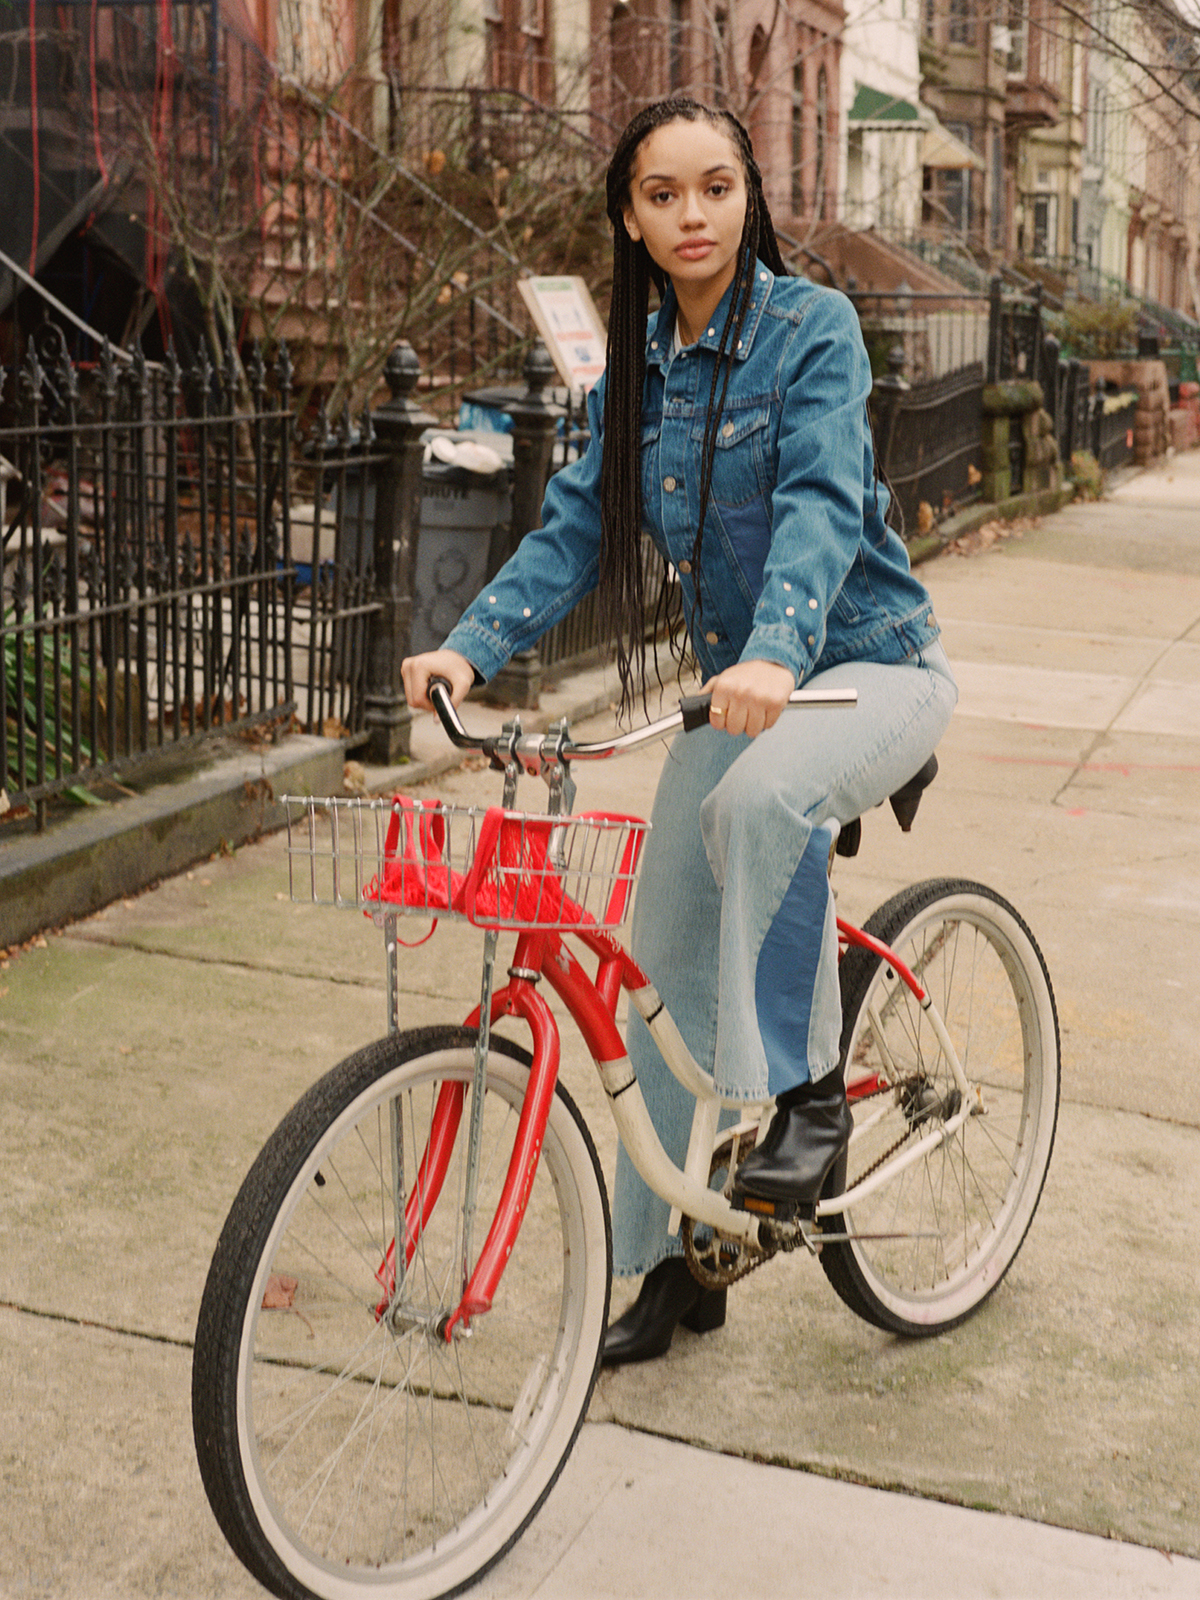 Women riding a bike in a denim outfit from AMENDI